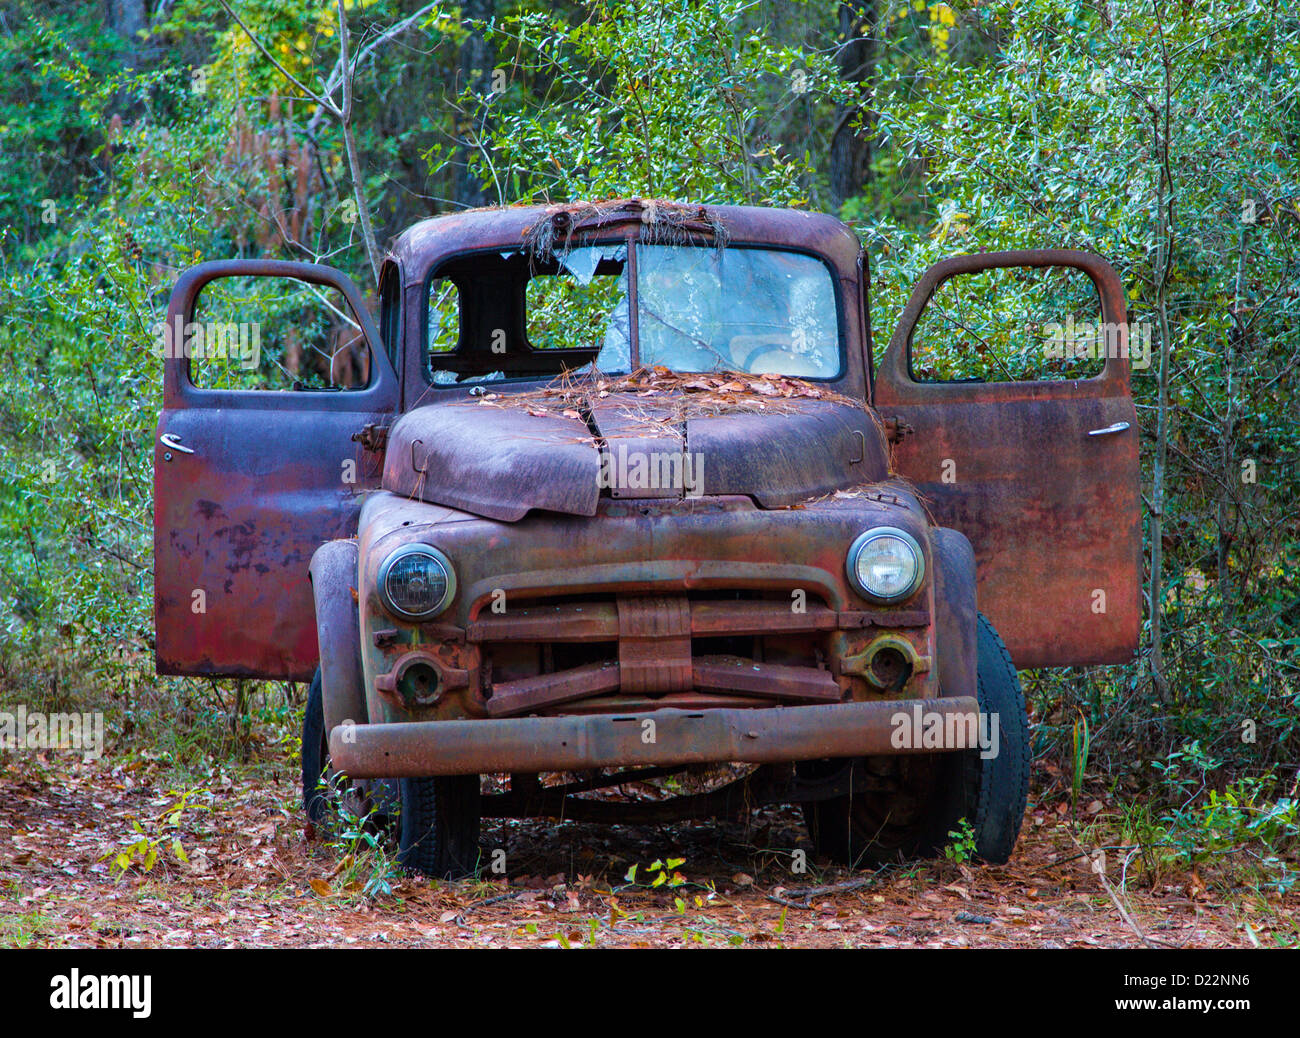 Old rusty broken down junk trucks Stock Photo: 52921378 - Alamy